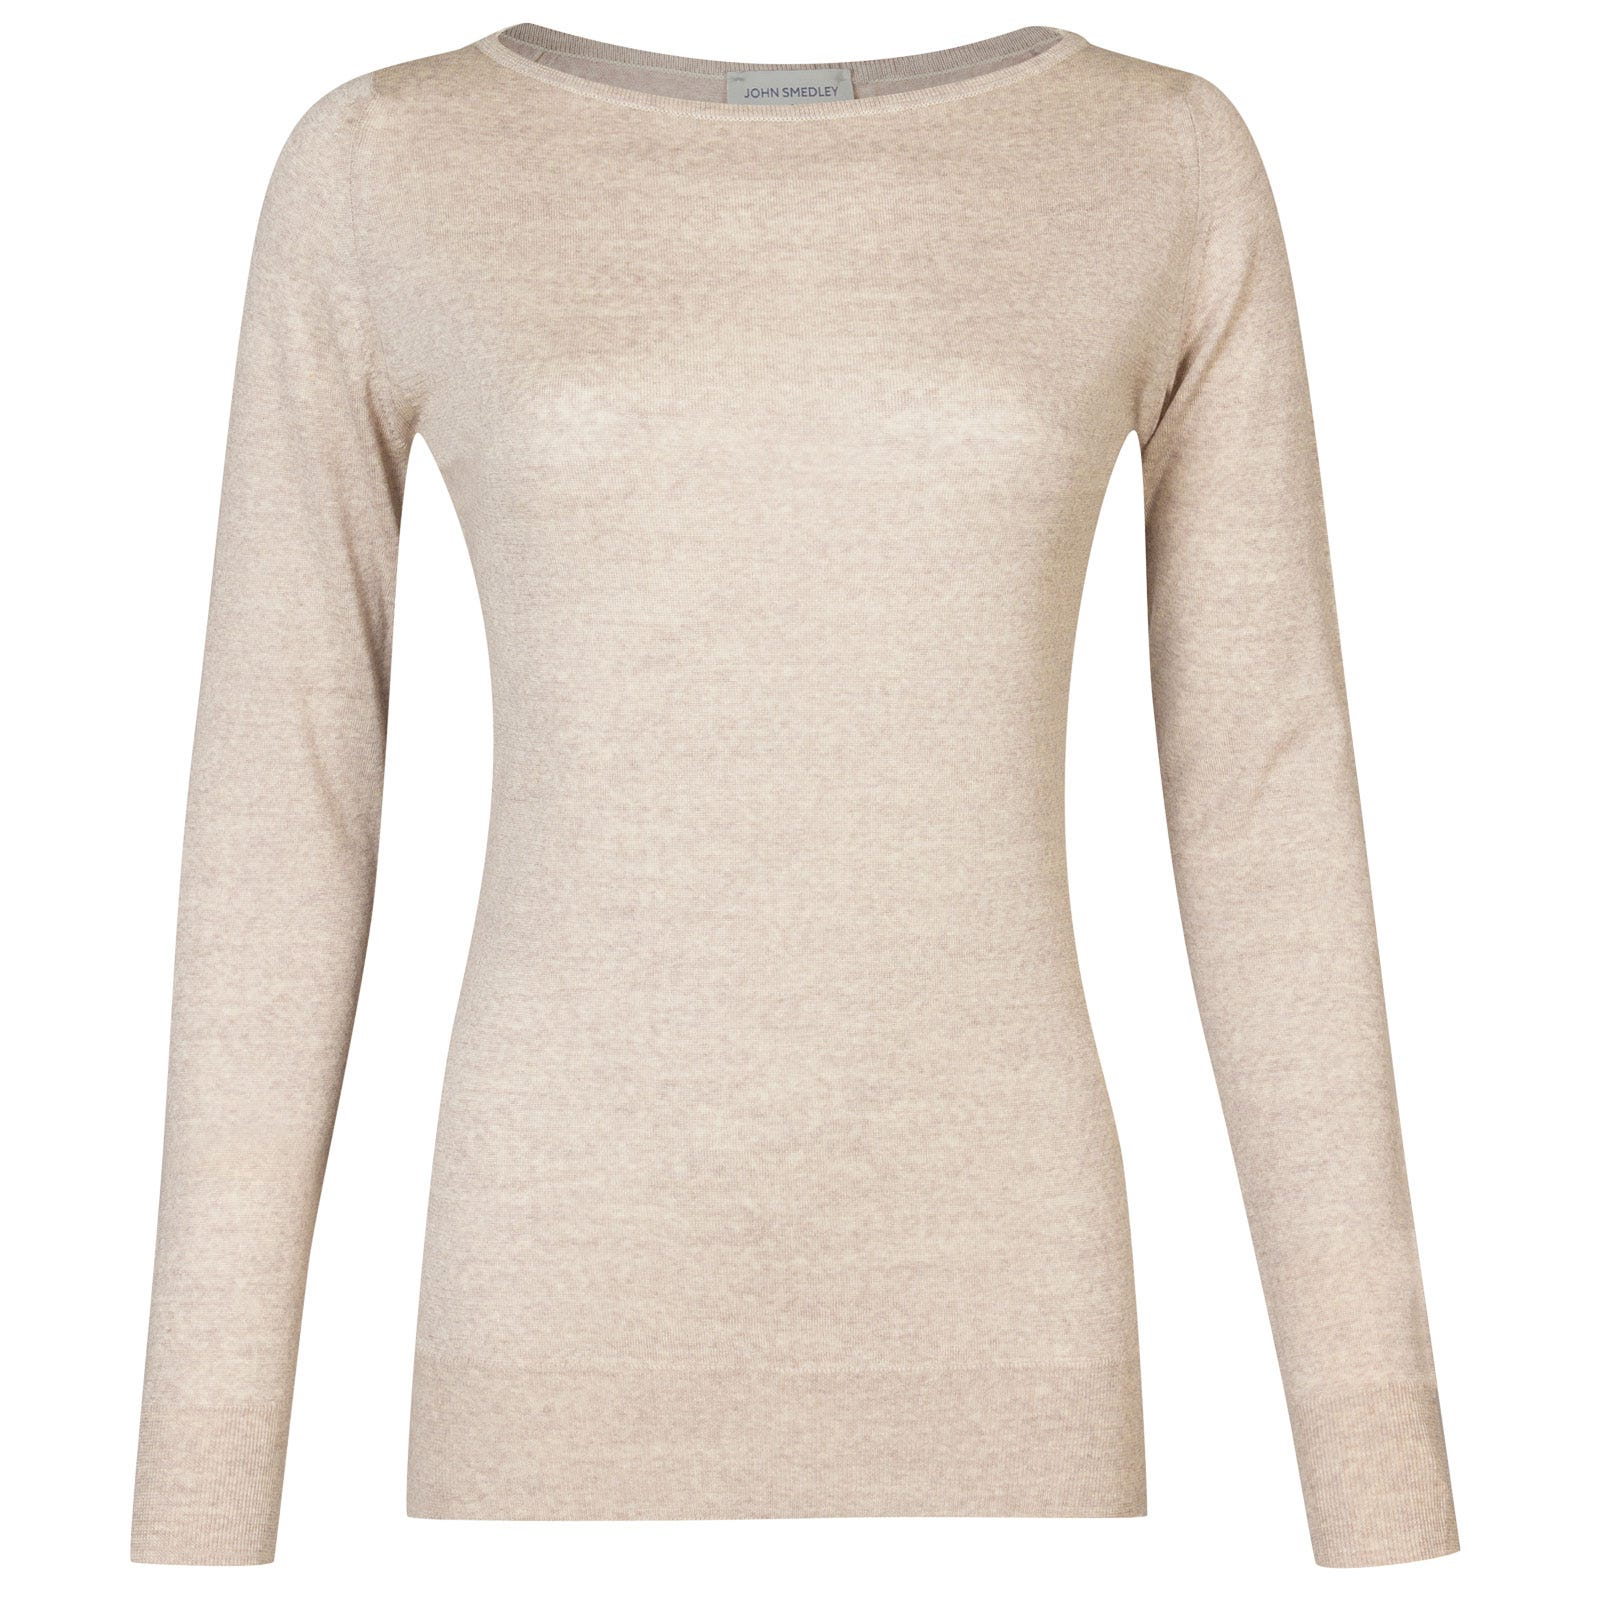 John Smedley susan Merino Wool Sweater in Eastwood Beige-S